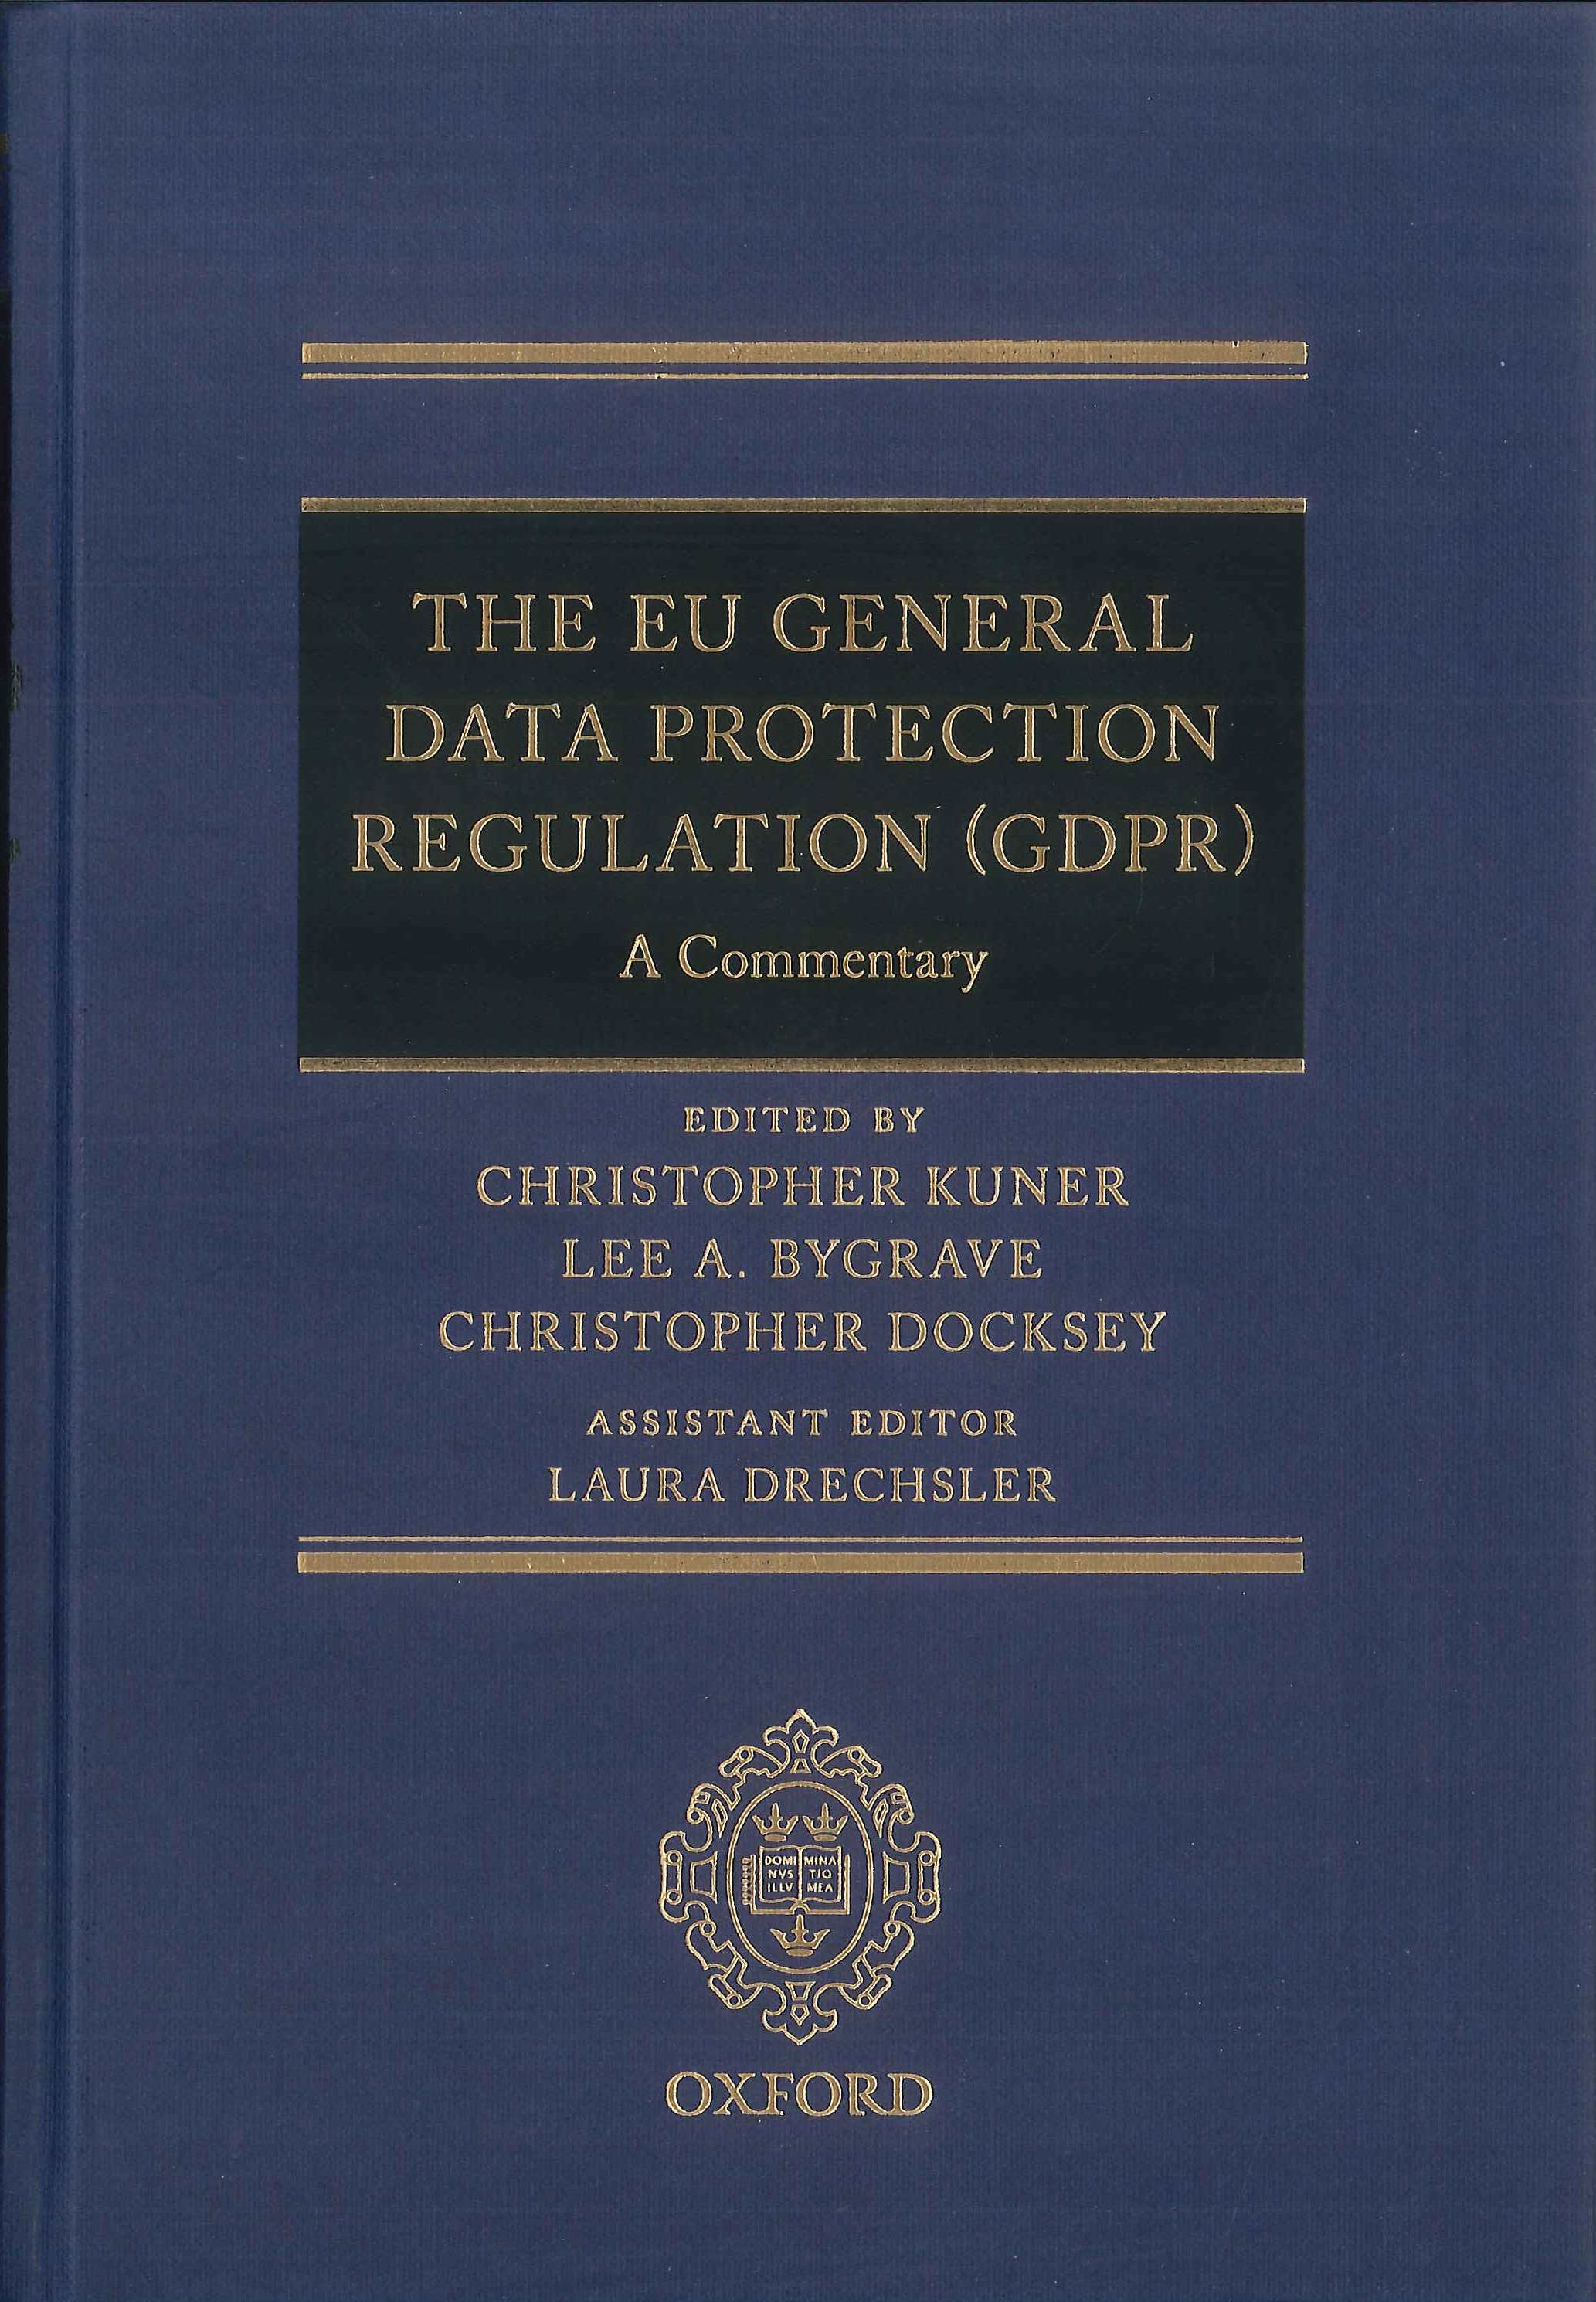 The EU general data protection regulation (GDPR):a commentary